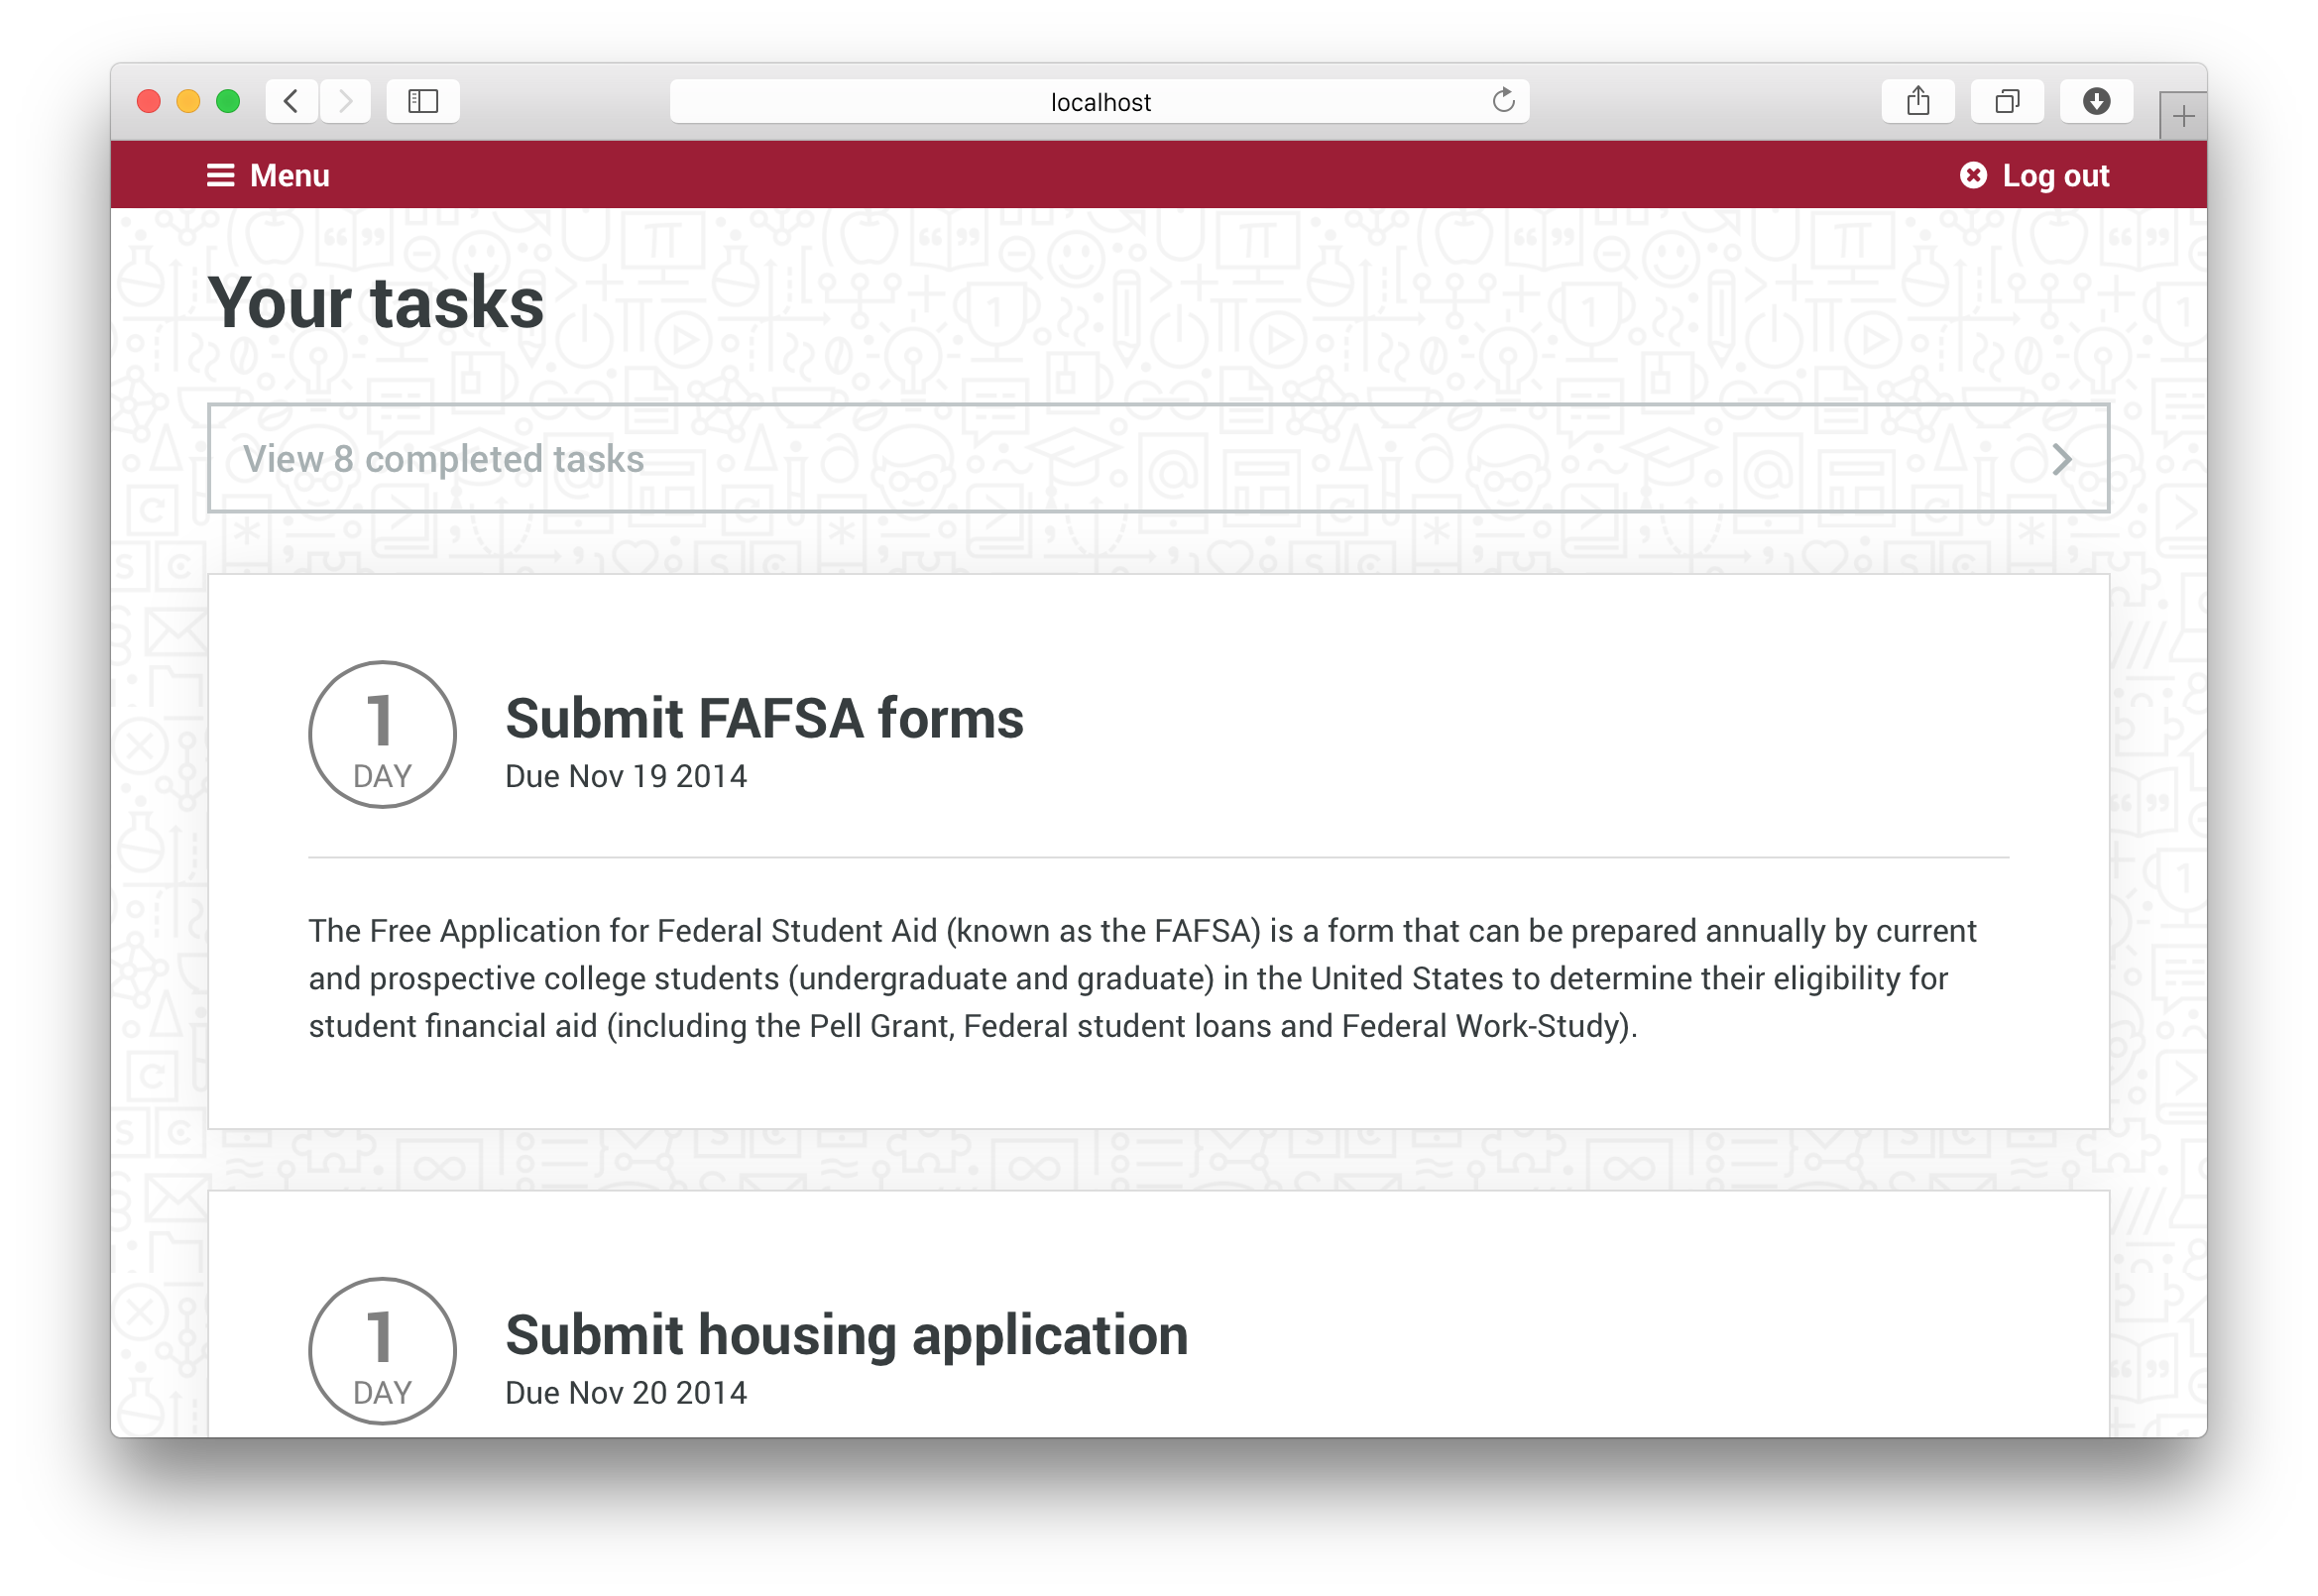 Your Tasks page with completed tasks and upcoming tasks